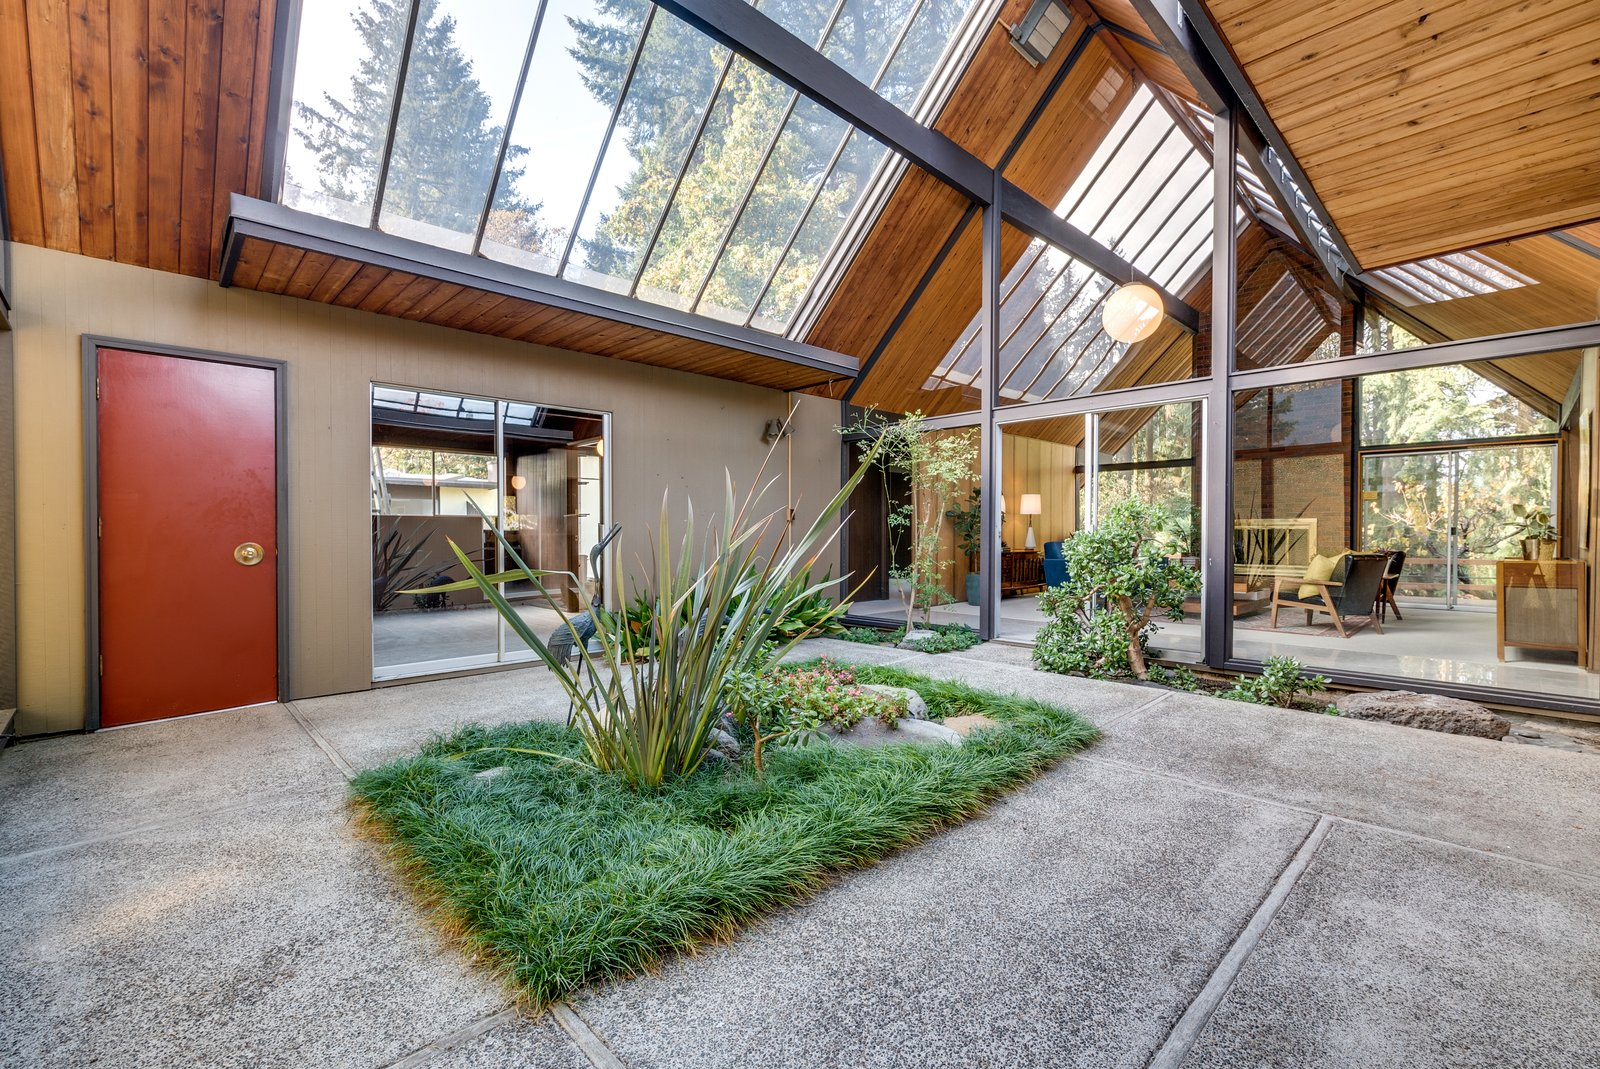 A Midcentury Rummer Home Near Portland Hits the Market For $699K